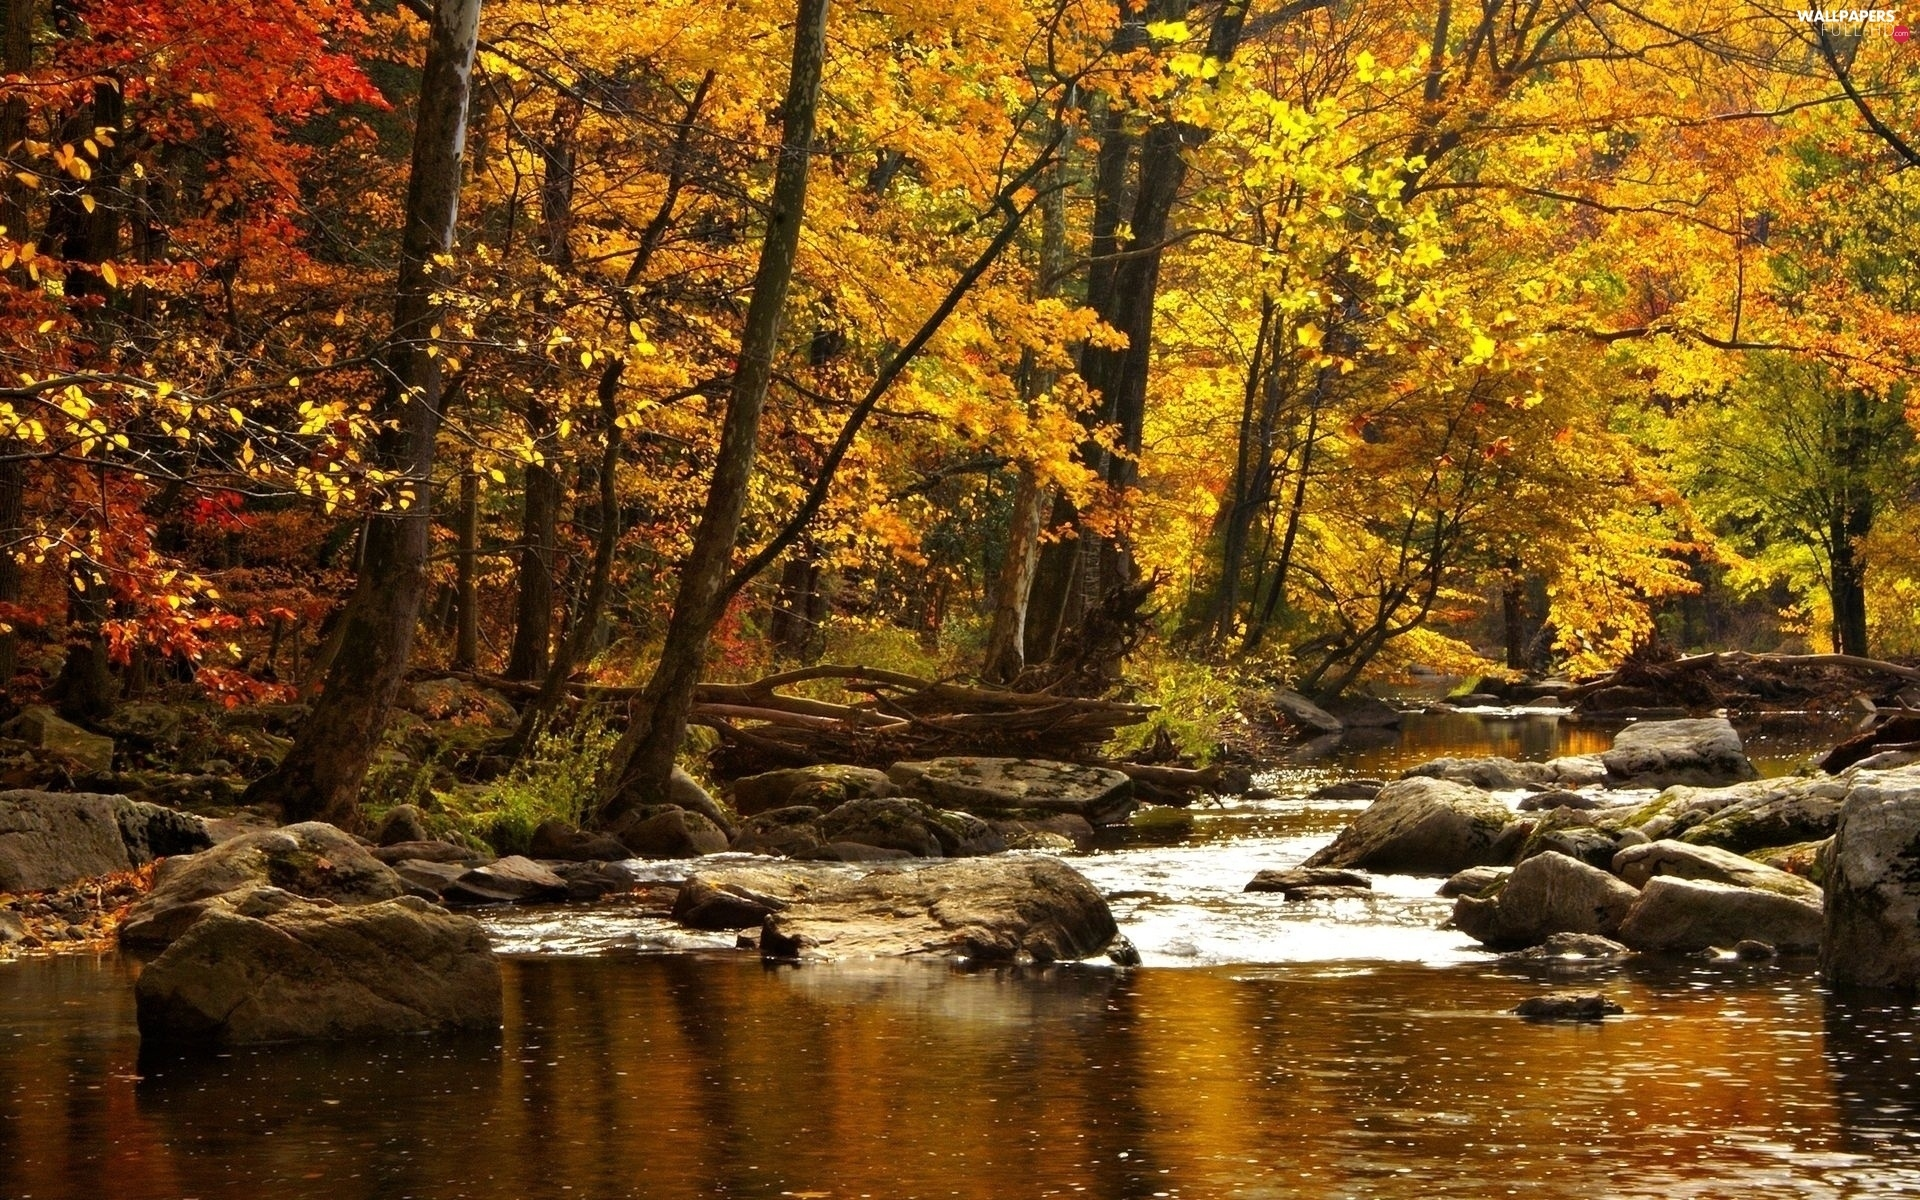 forest, autumn, River